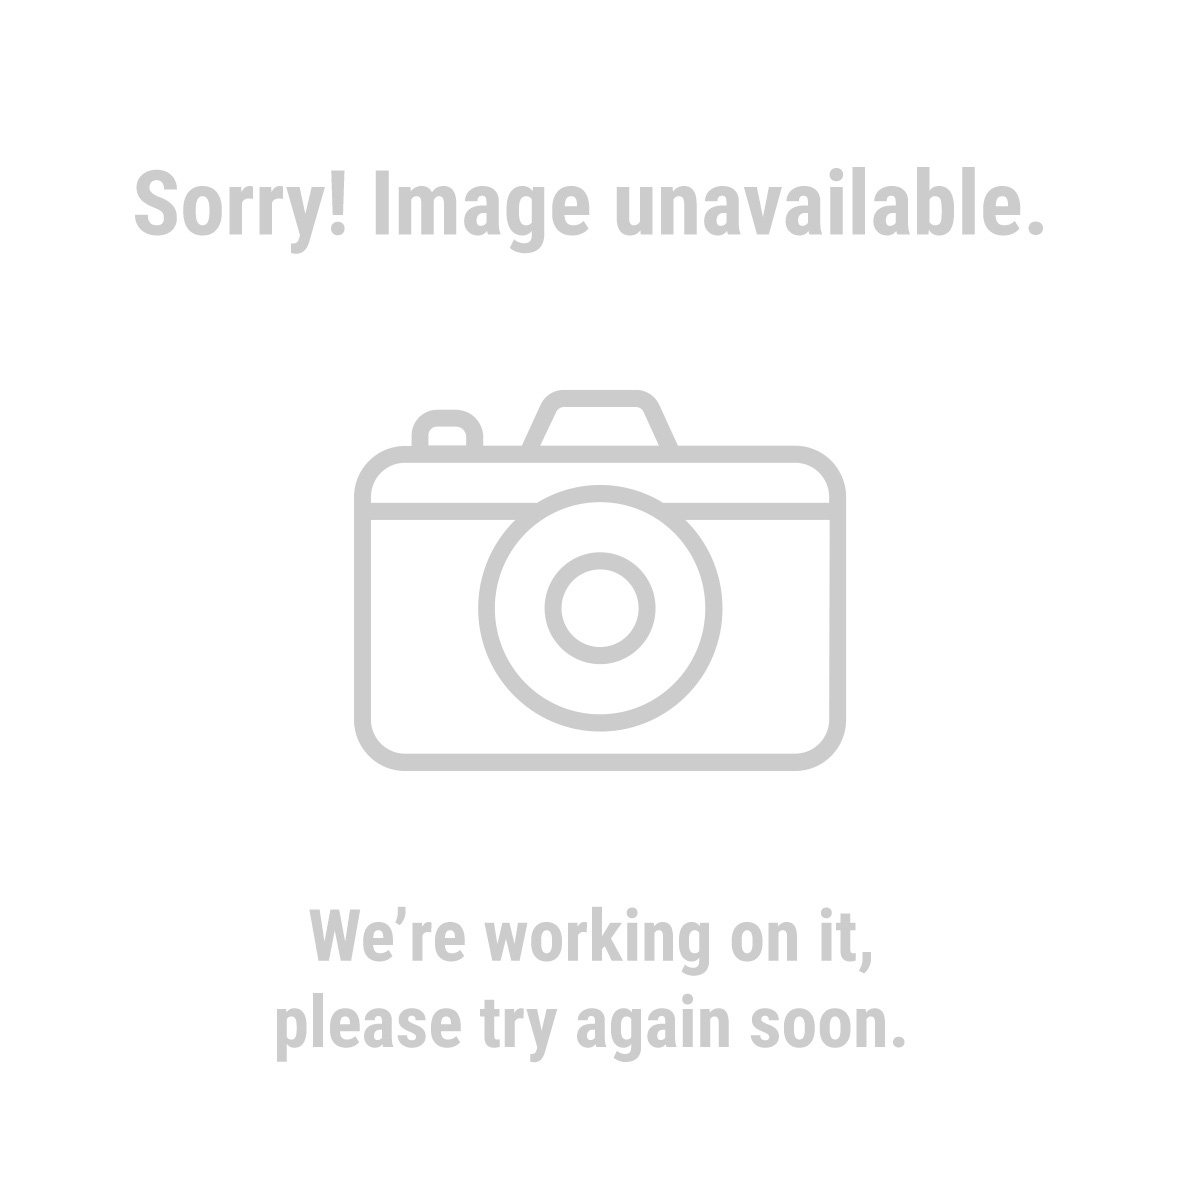 HFT 93109 4 Piece Ratcheting Tie Down and Buckle Set